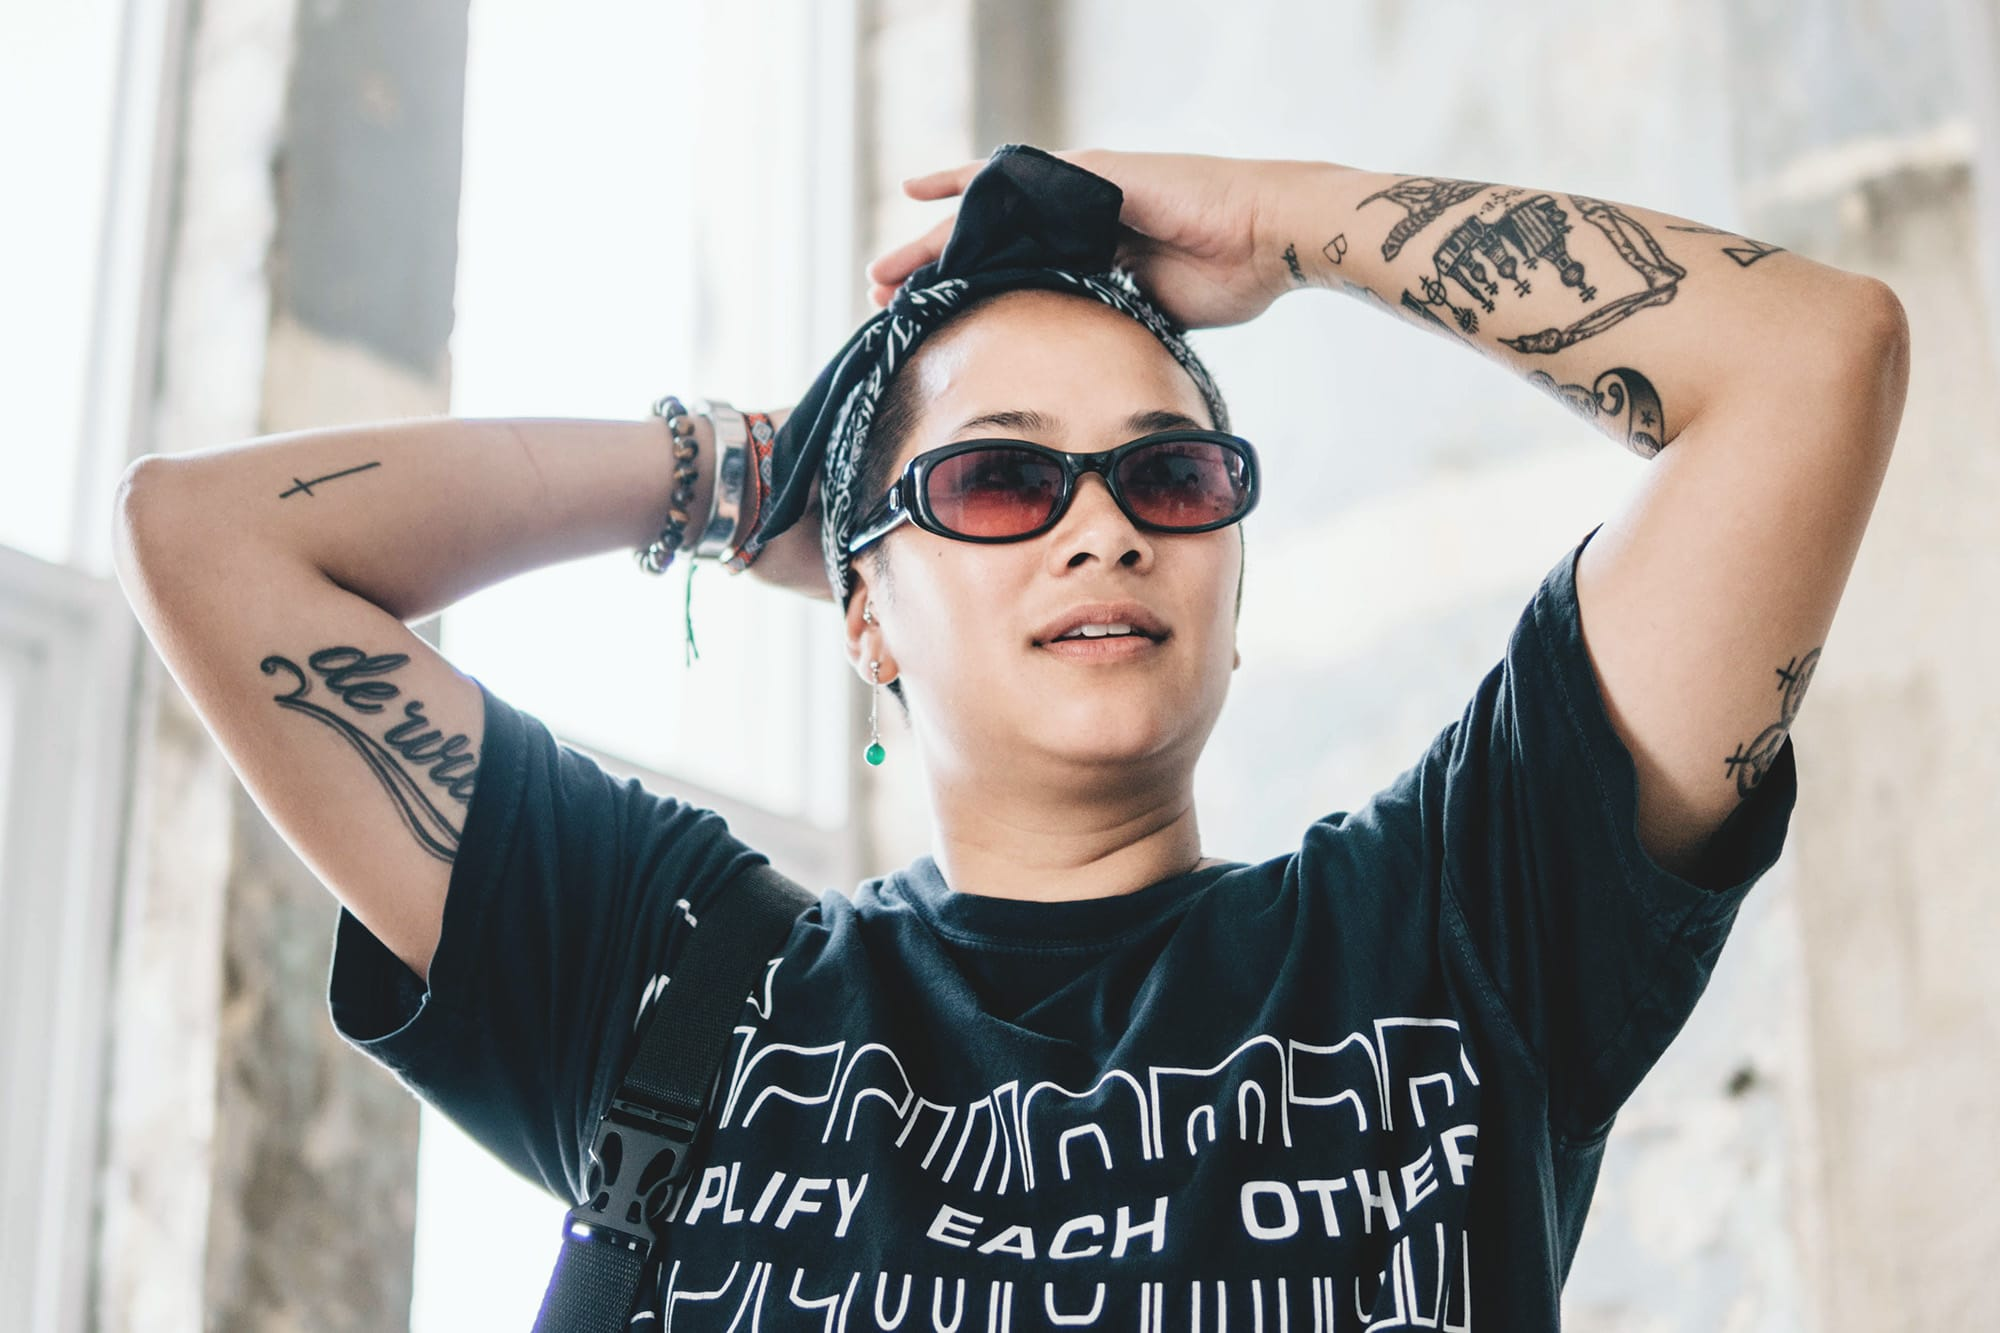 Discwoman's Co-Founder Talks About Their NYC Feminist Collective